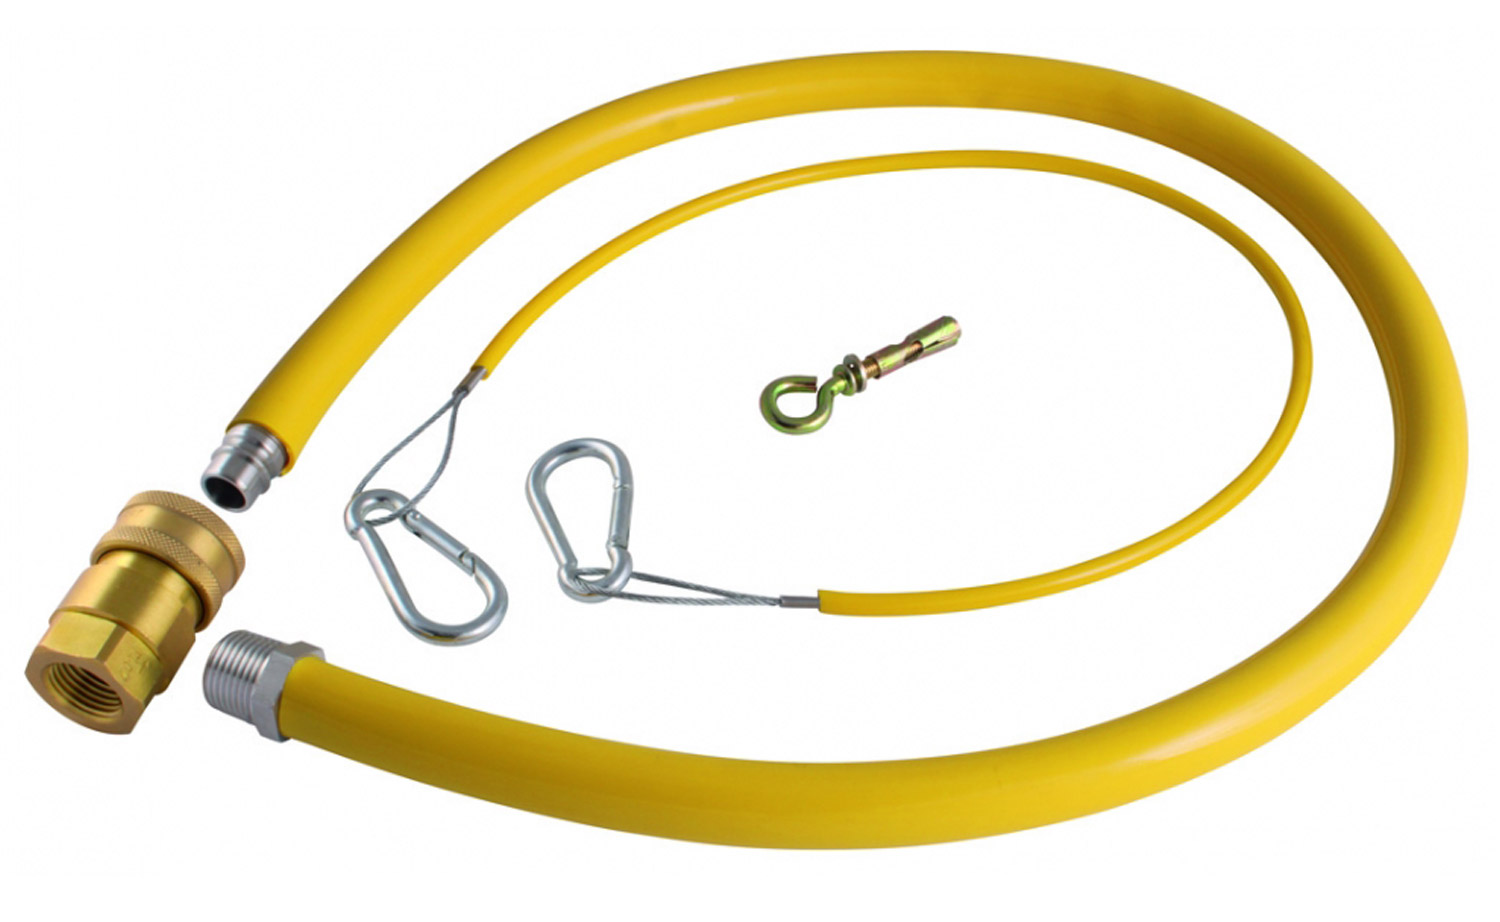 CATERHOSE COMMERCIAL YELLOW GAS CATERING PIPE HOSE 1M LONG 1500mm by 3//4/'